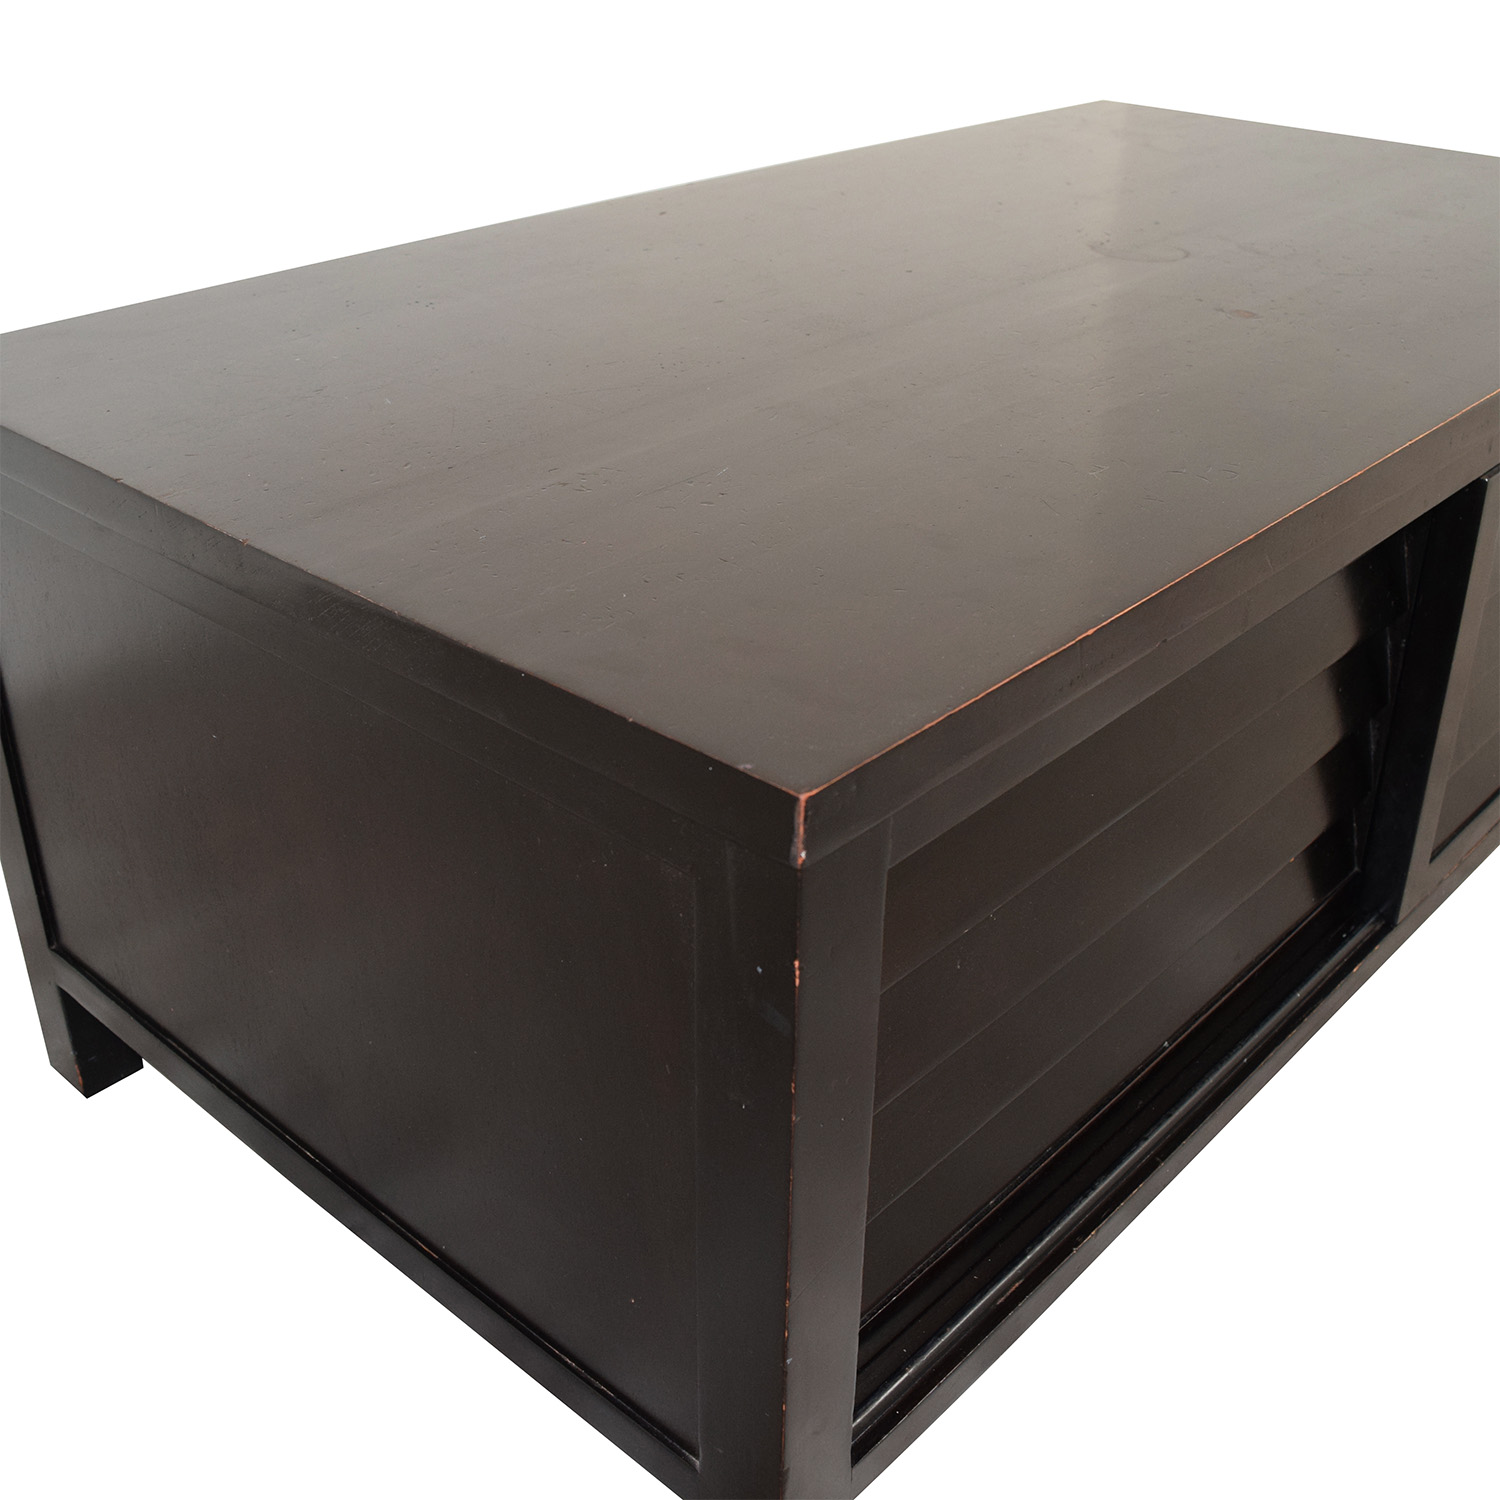 Crate And Barrel Black Marble Coffee Table: Crate & Barrel Crate & Barrel Coffee Table W